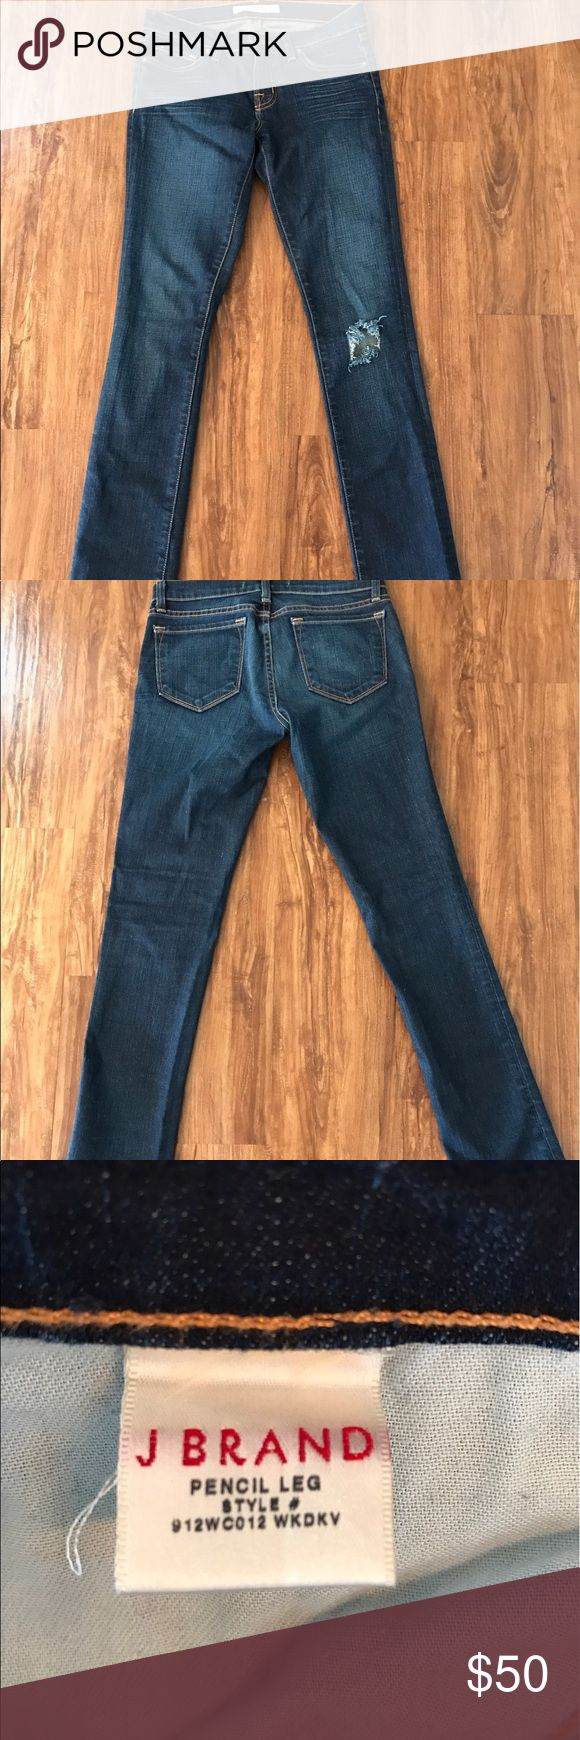 J Brand Pencil Leg Jean Medium Wash Great condition. J Brand Jeans Skinny